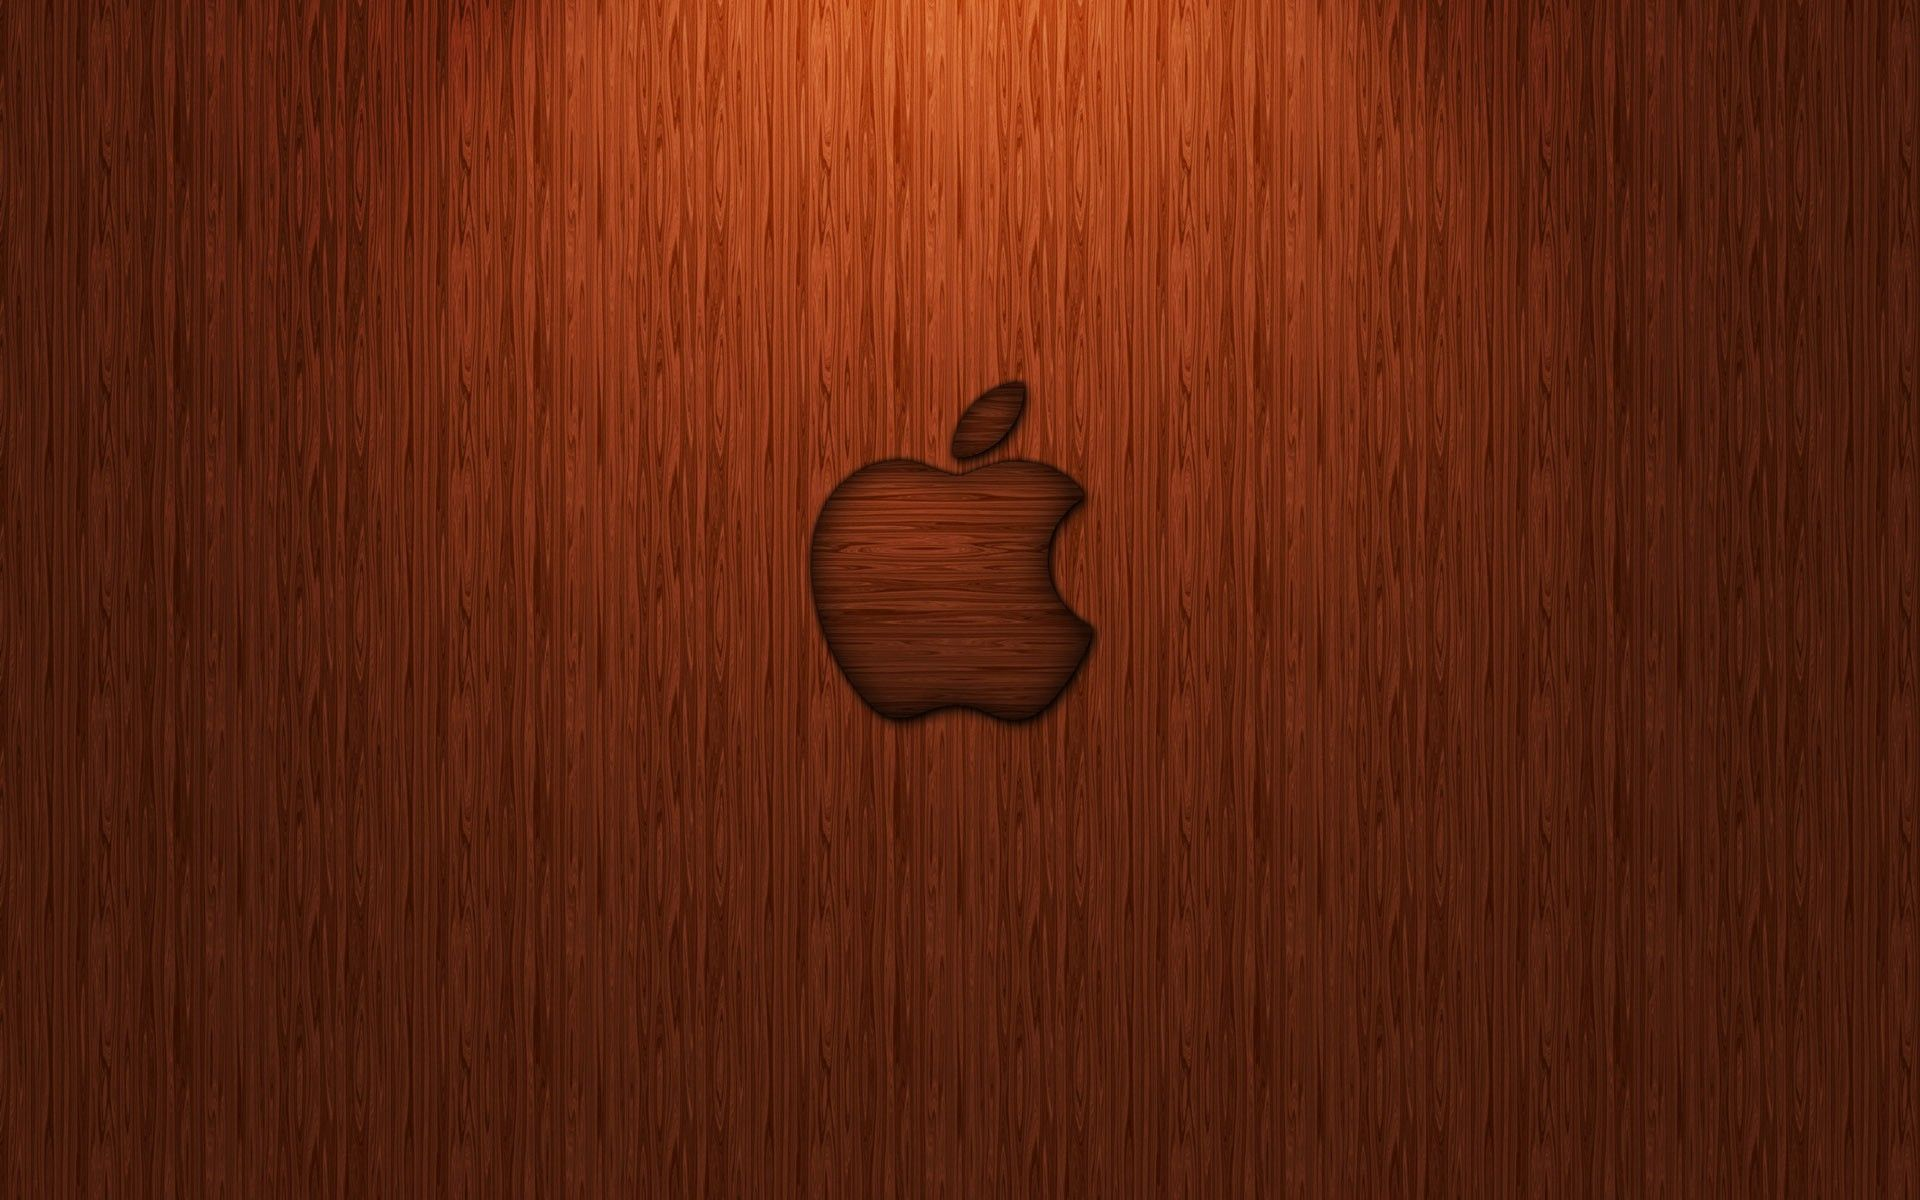 Apple Background Wood  images free download 1920x1200